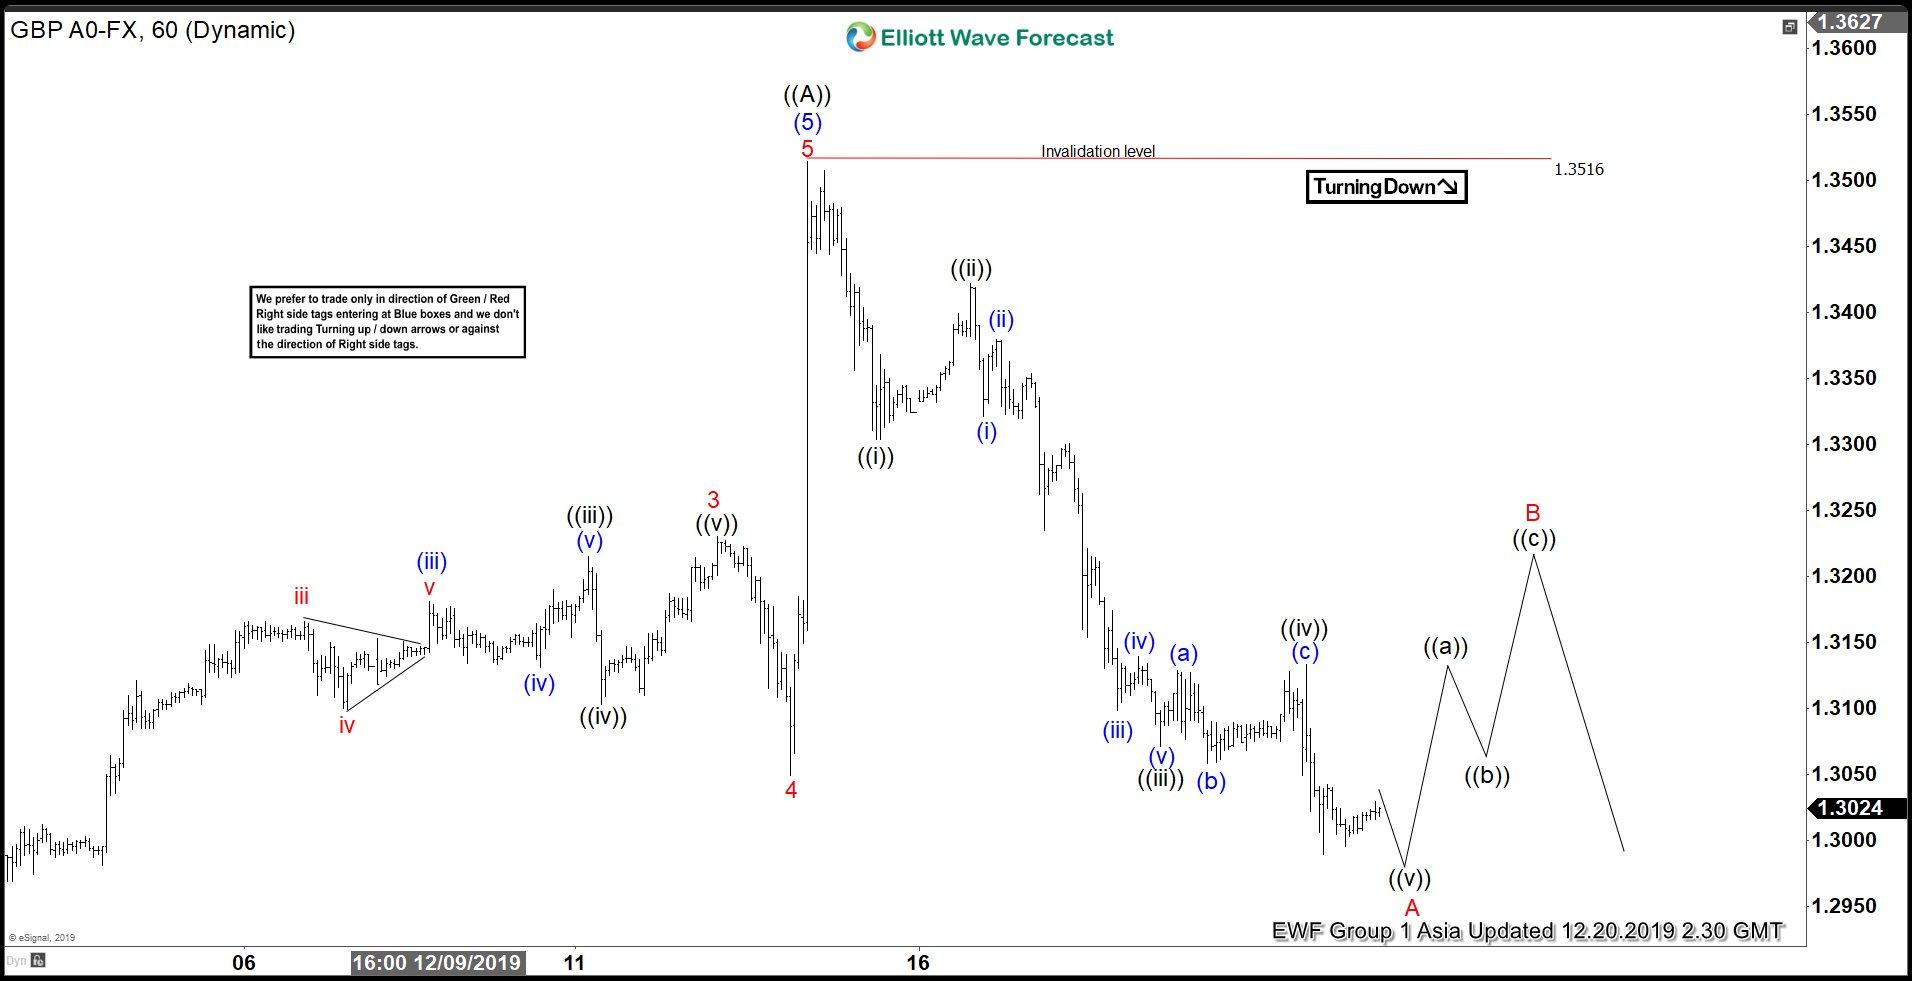 Elliott Wave View: GBPUSD Impulsive Decline Suggests More Downside